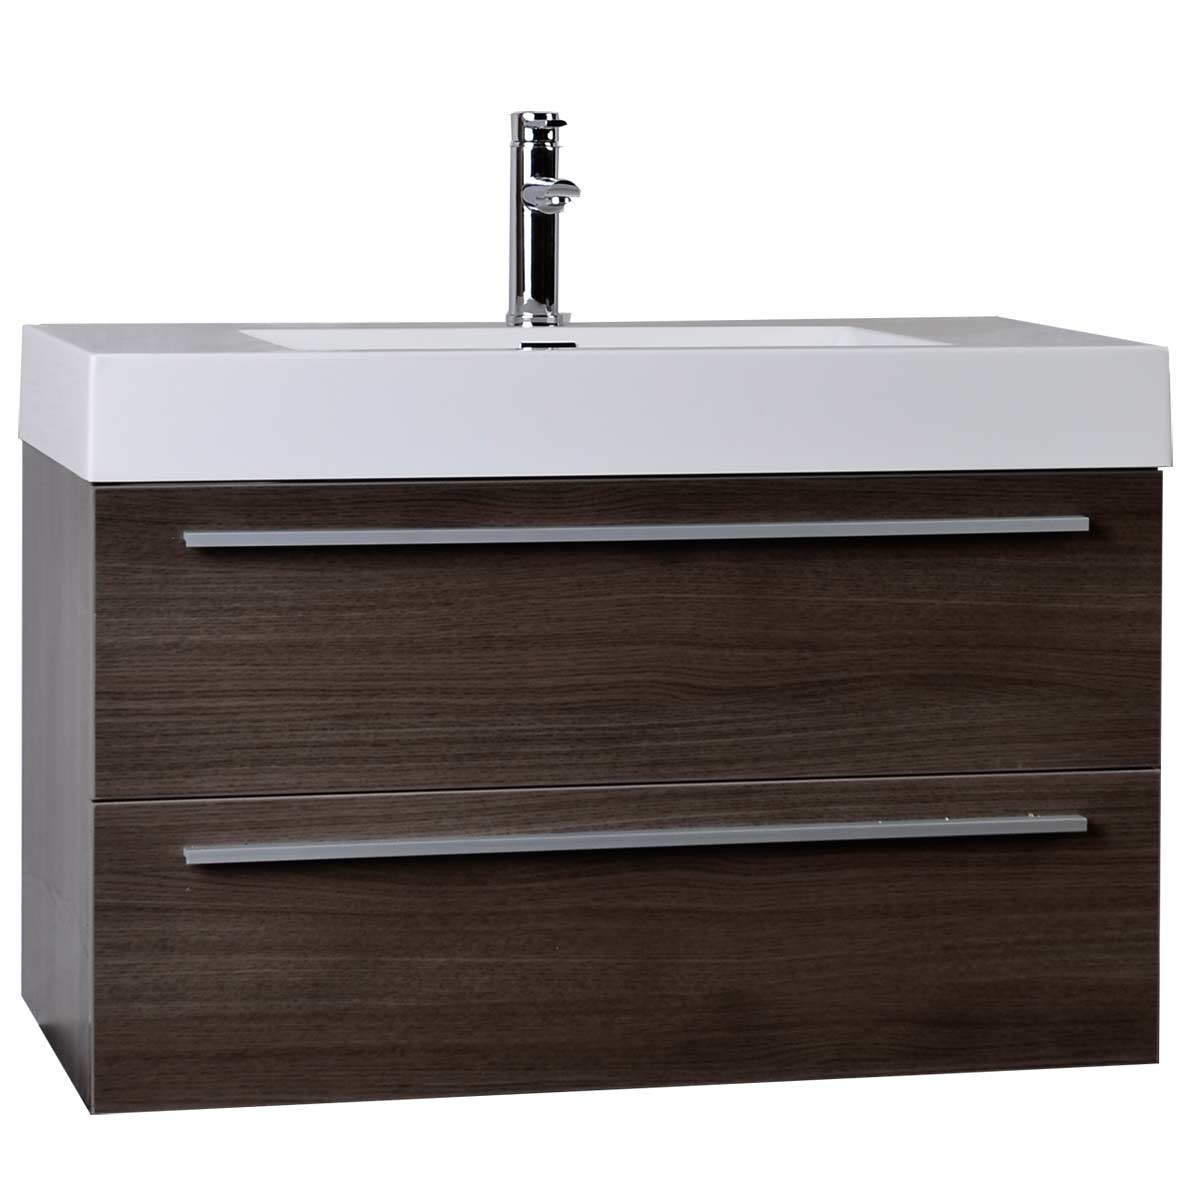 35 5 modern bathroom vanity grey oak wall mount free for Modern contemporary bathroom vanities